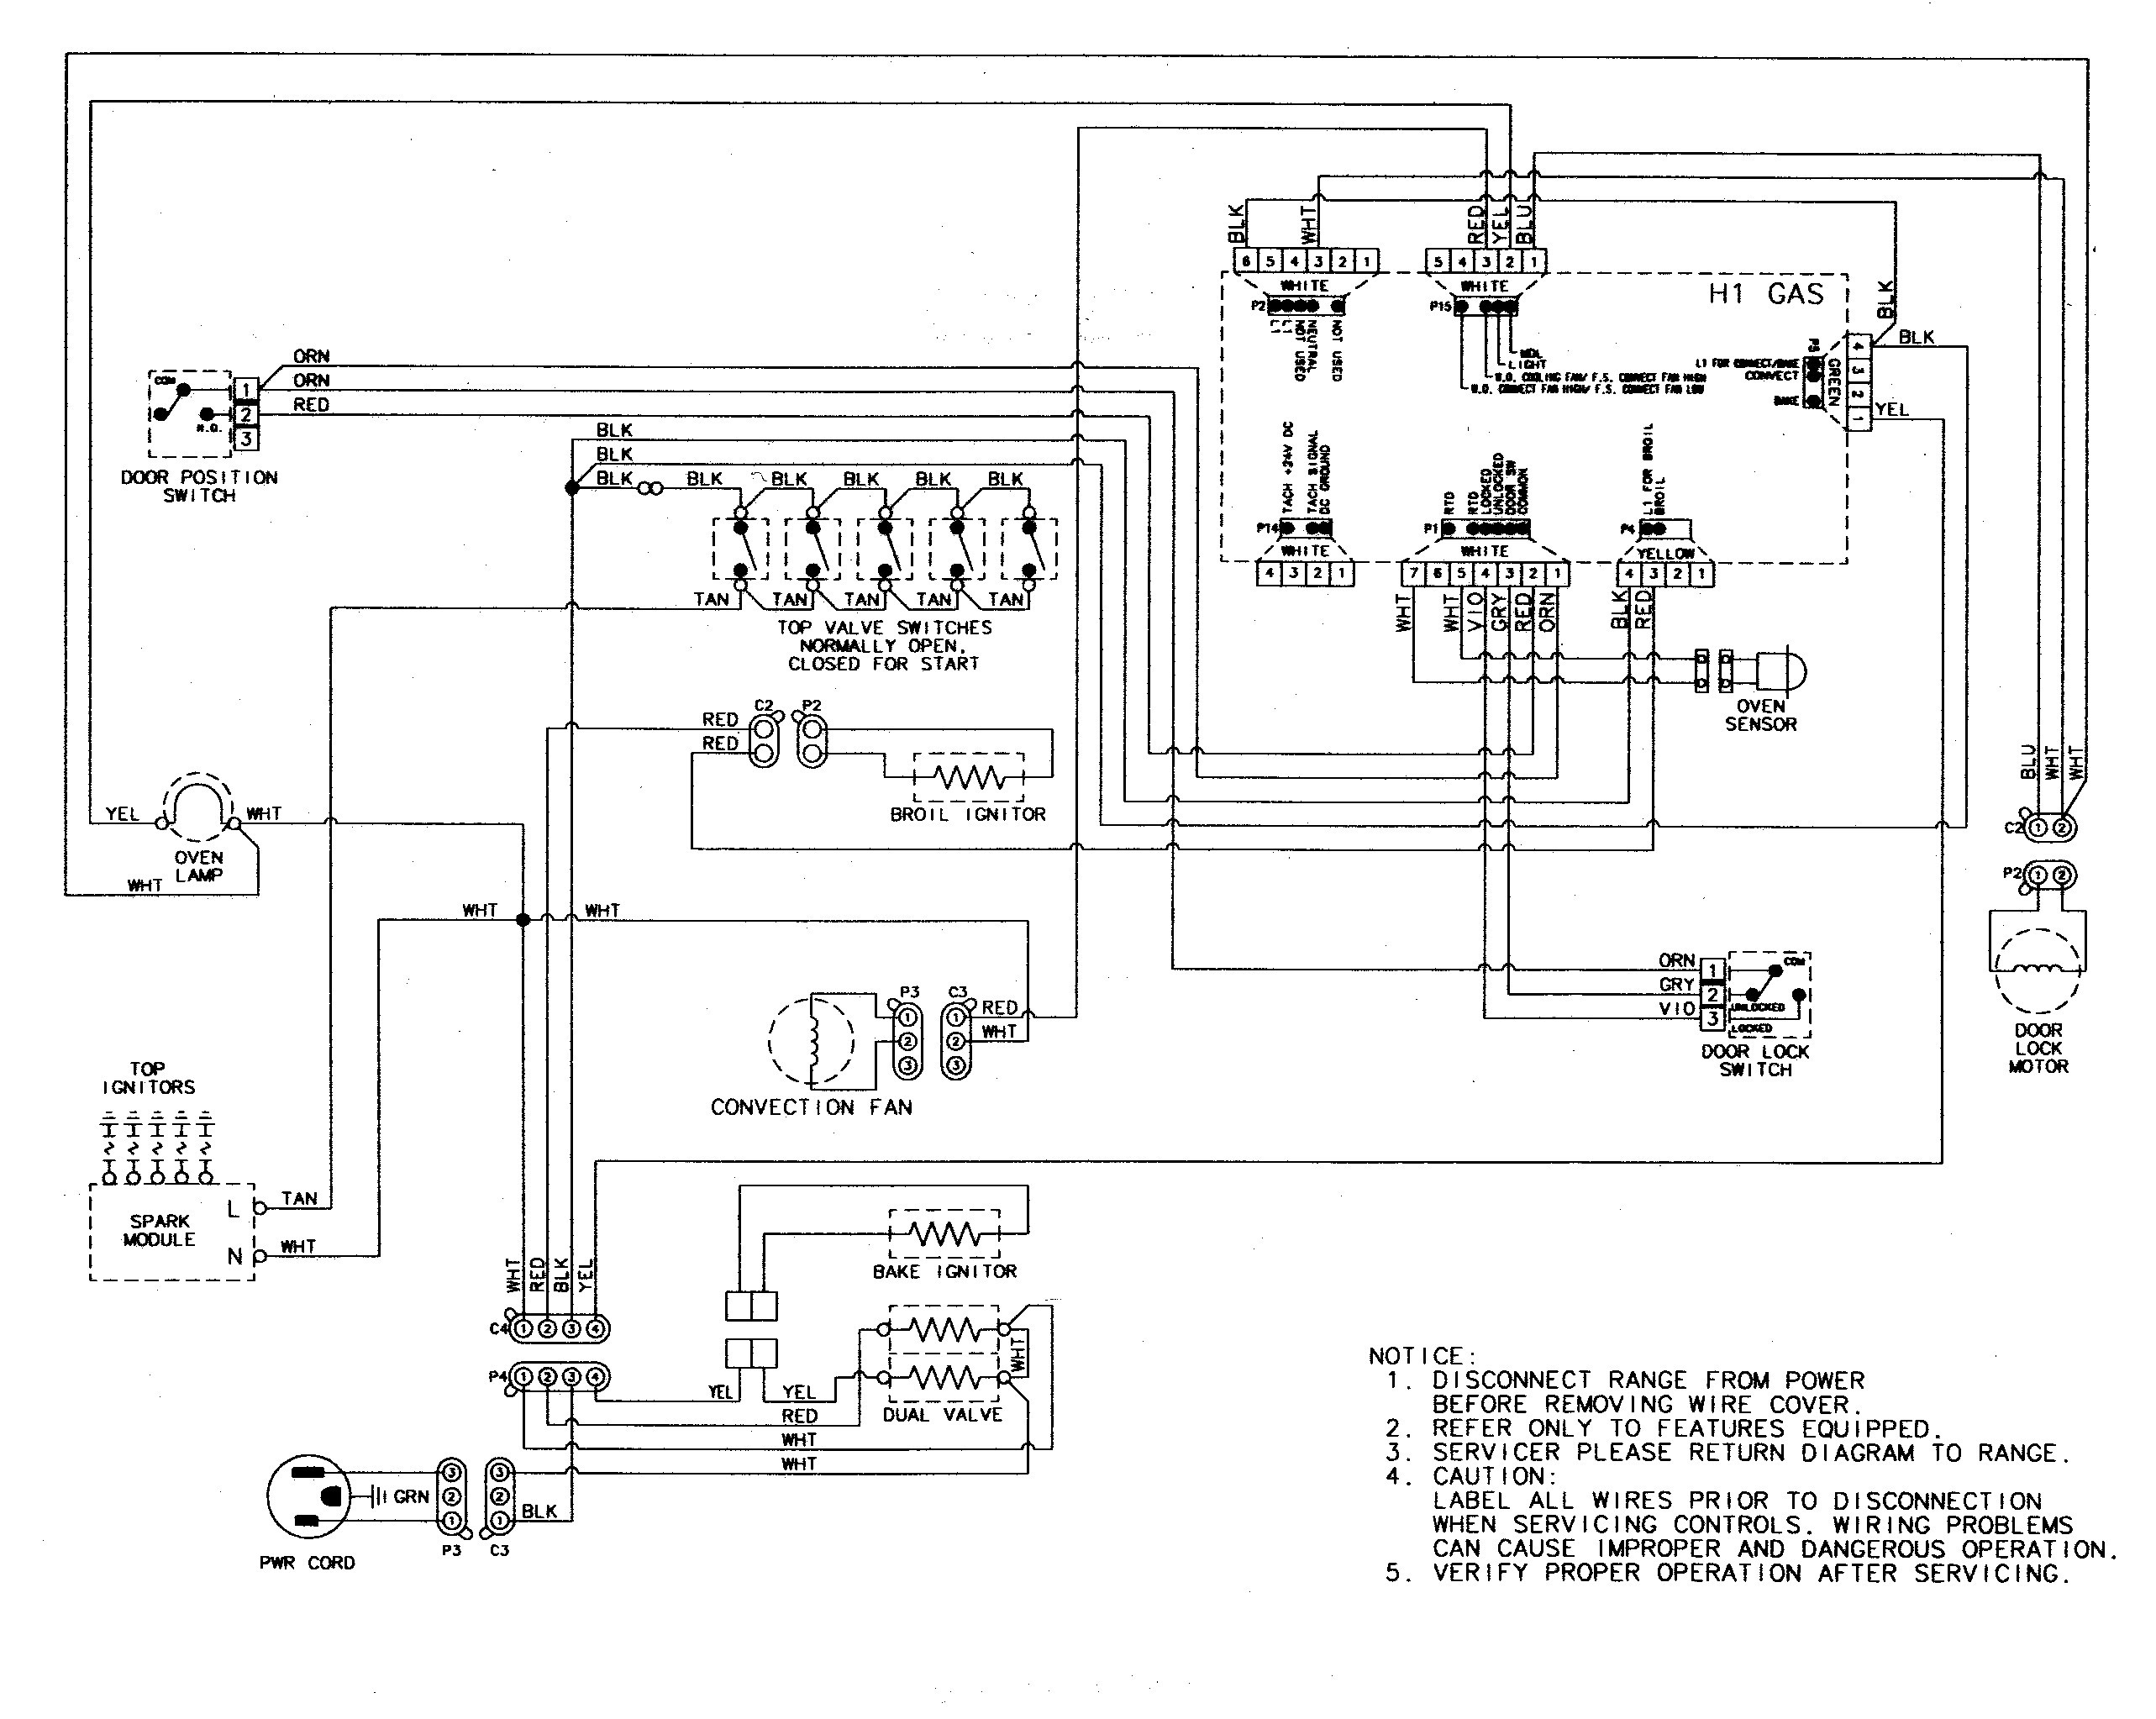 hotpoint oven wiring diagram hotpoint dryer timer wiring diagram sample #9